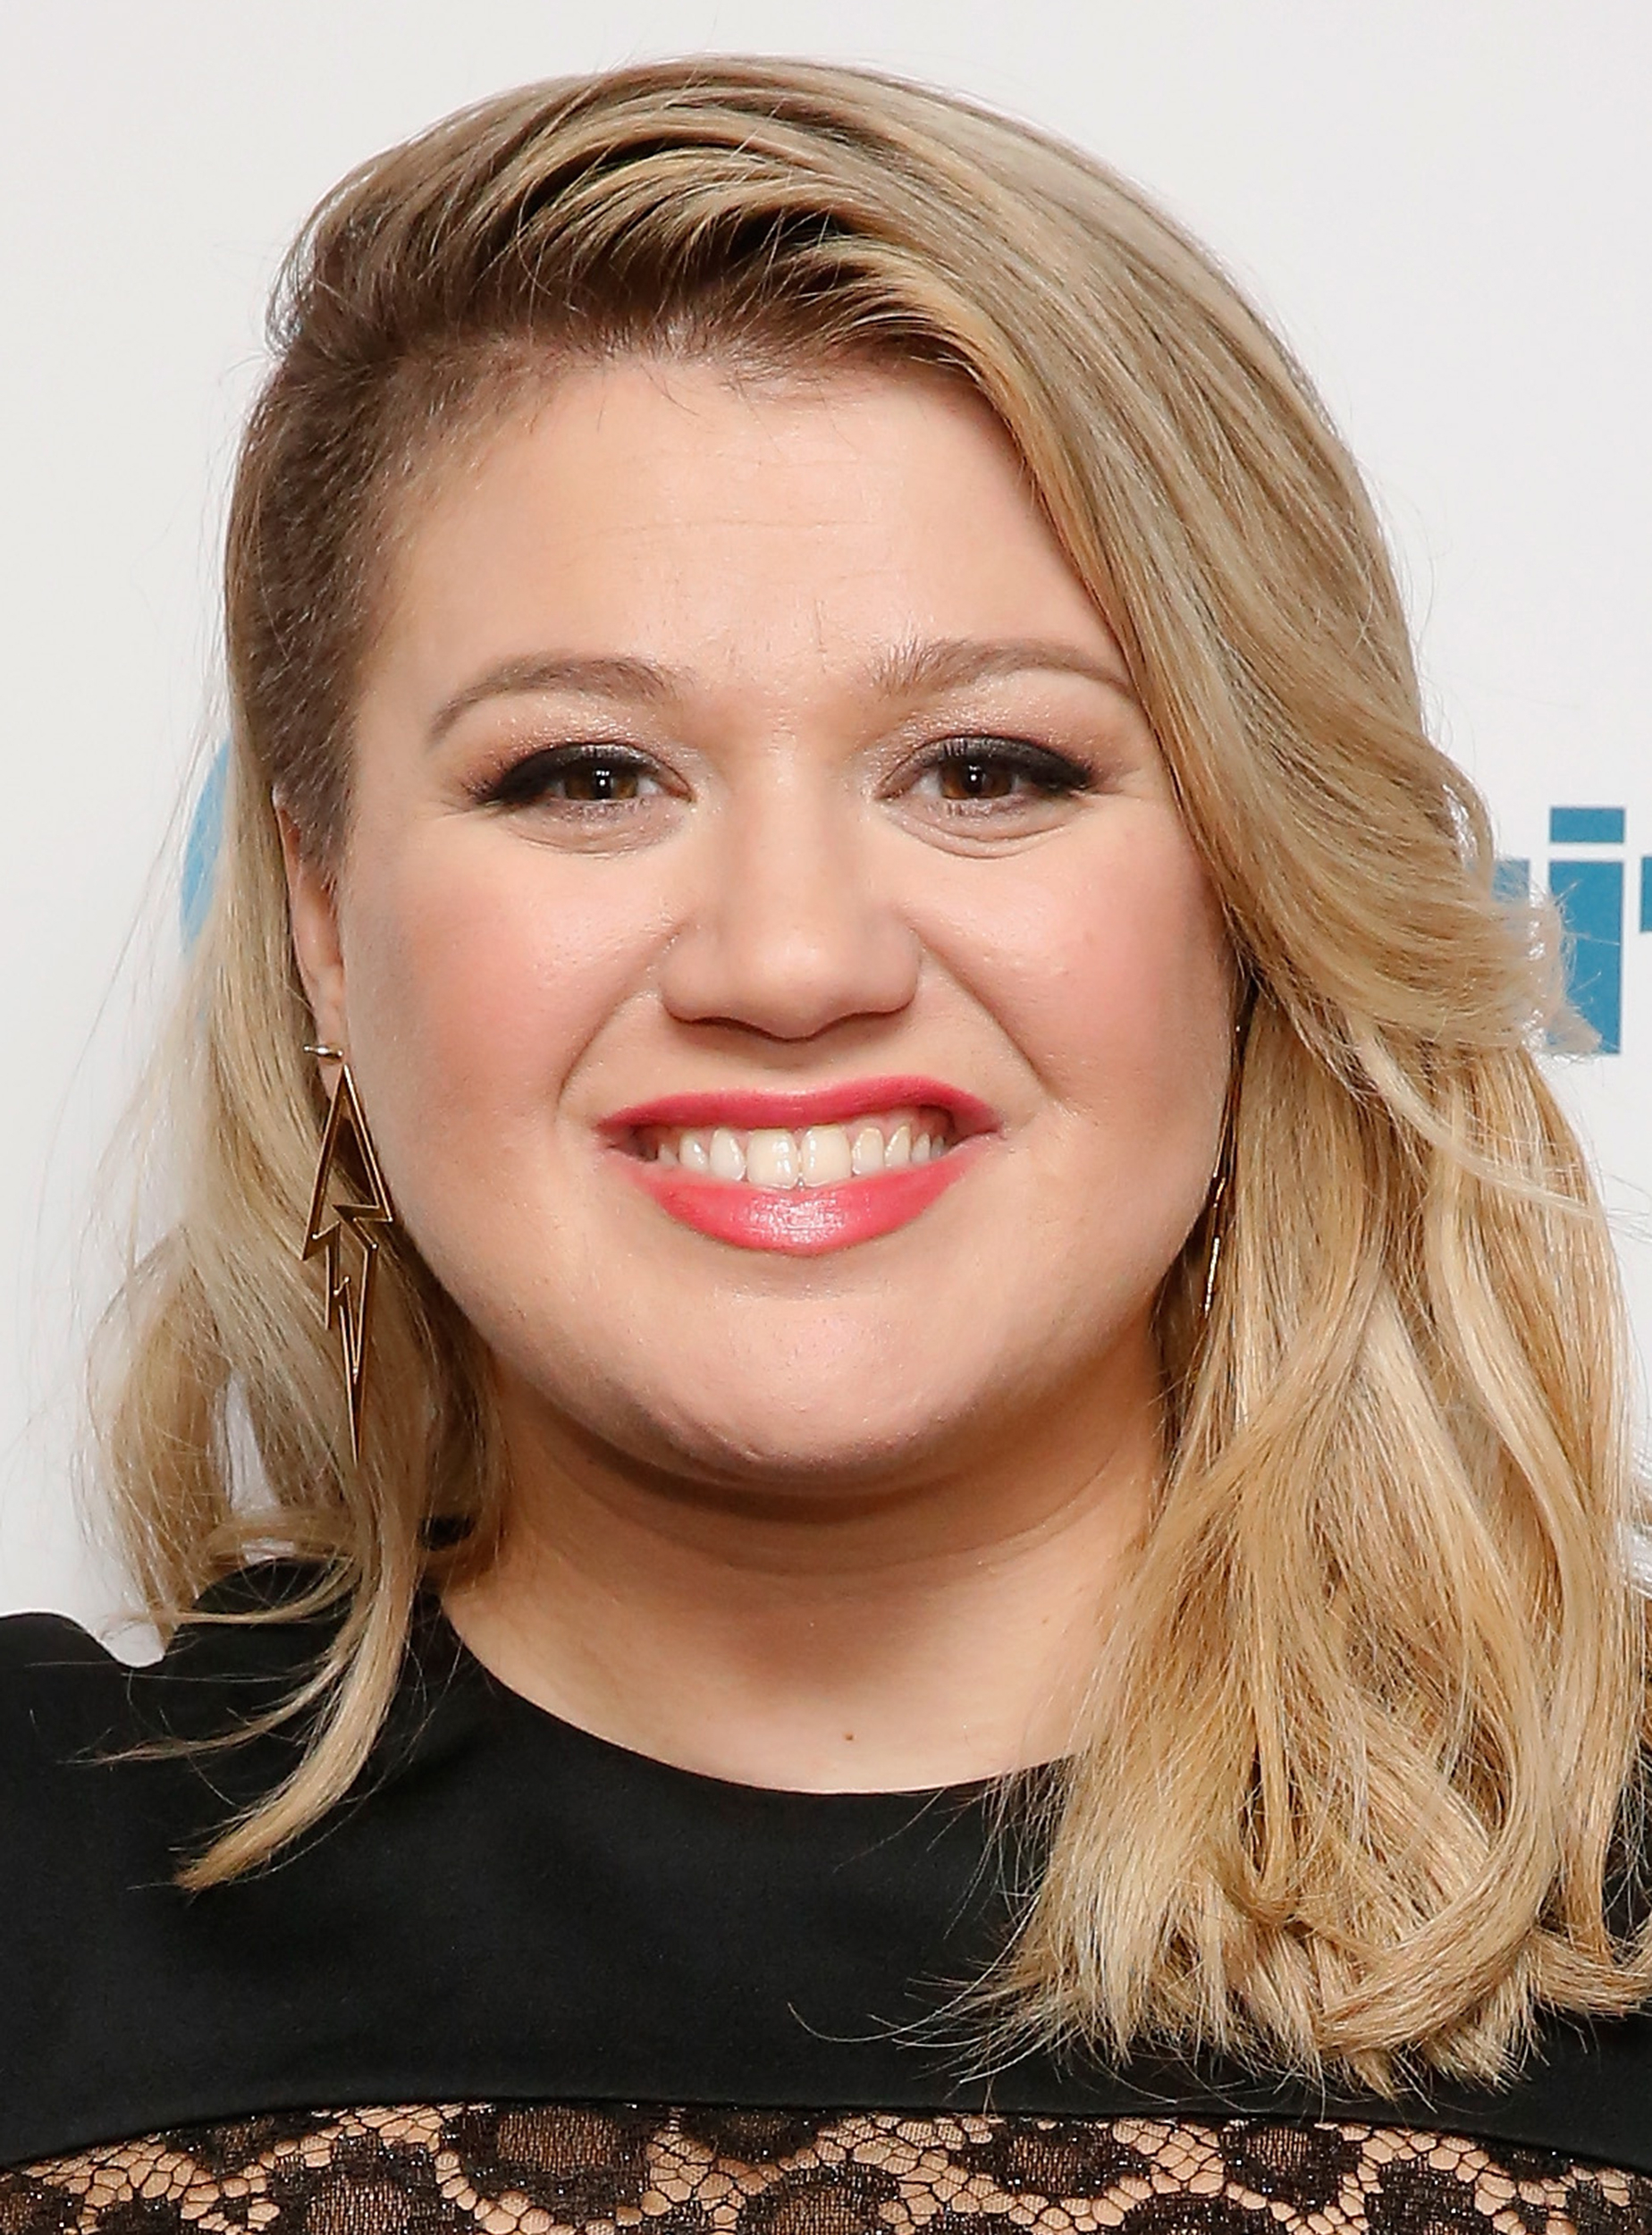 28 Best Hairstyles For Round Faces For Kelly Clarkson Short Hairstyles (View 21 of 25)